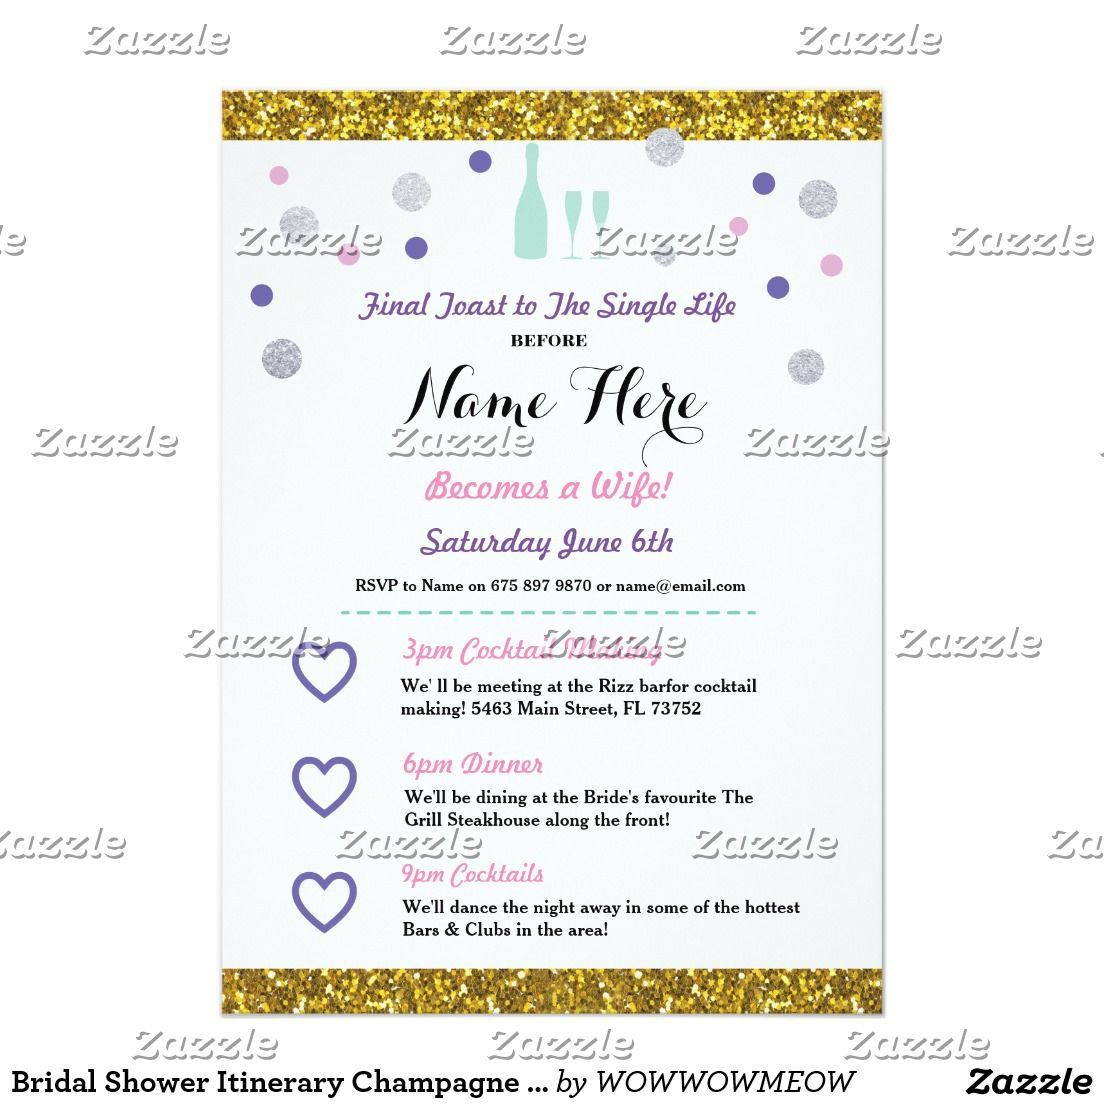 006 Unusual Bachelorette Itinerary Template Free High Resolution  Party Editable DownloadFull